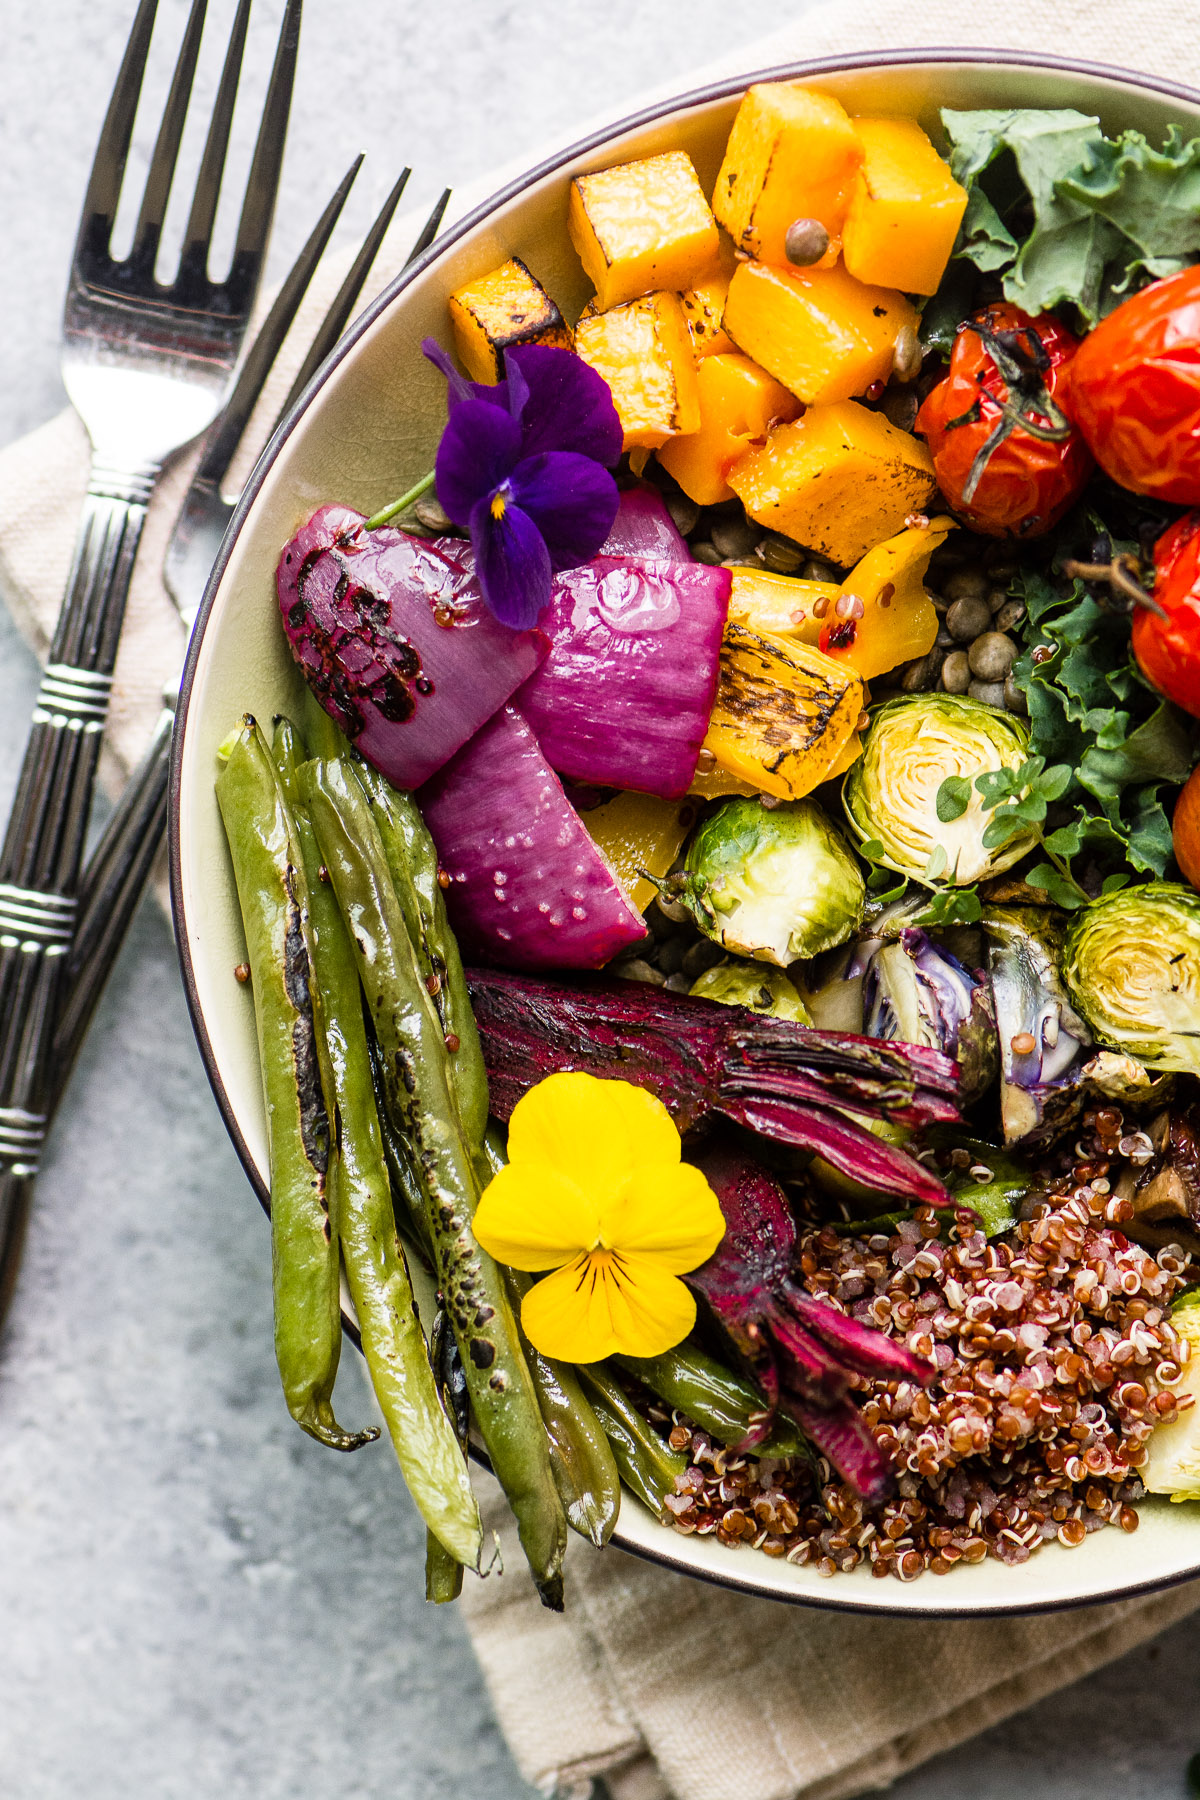 A roasted vegetable winter bliss bowl with forks